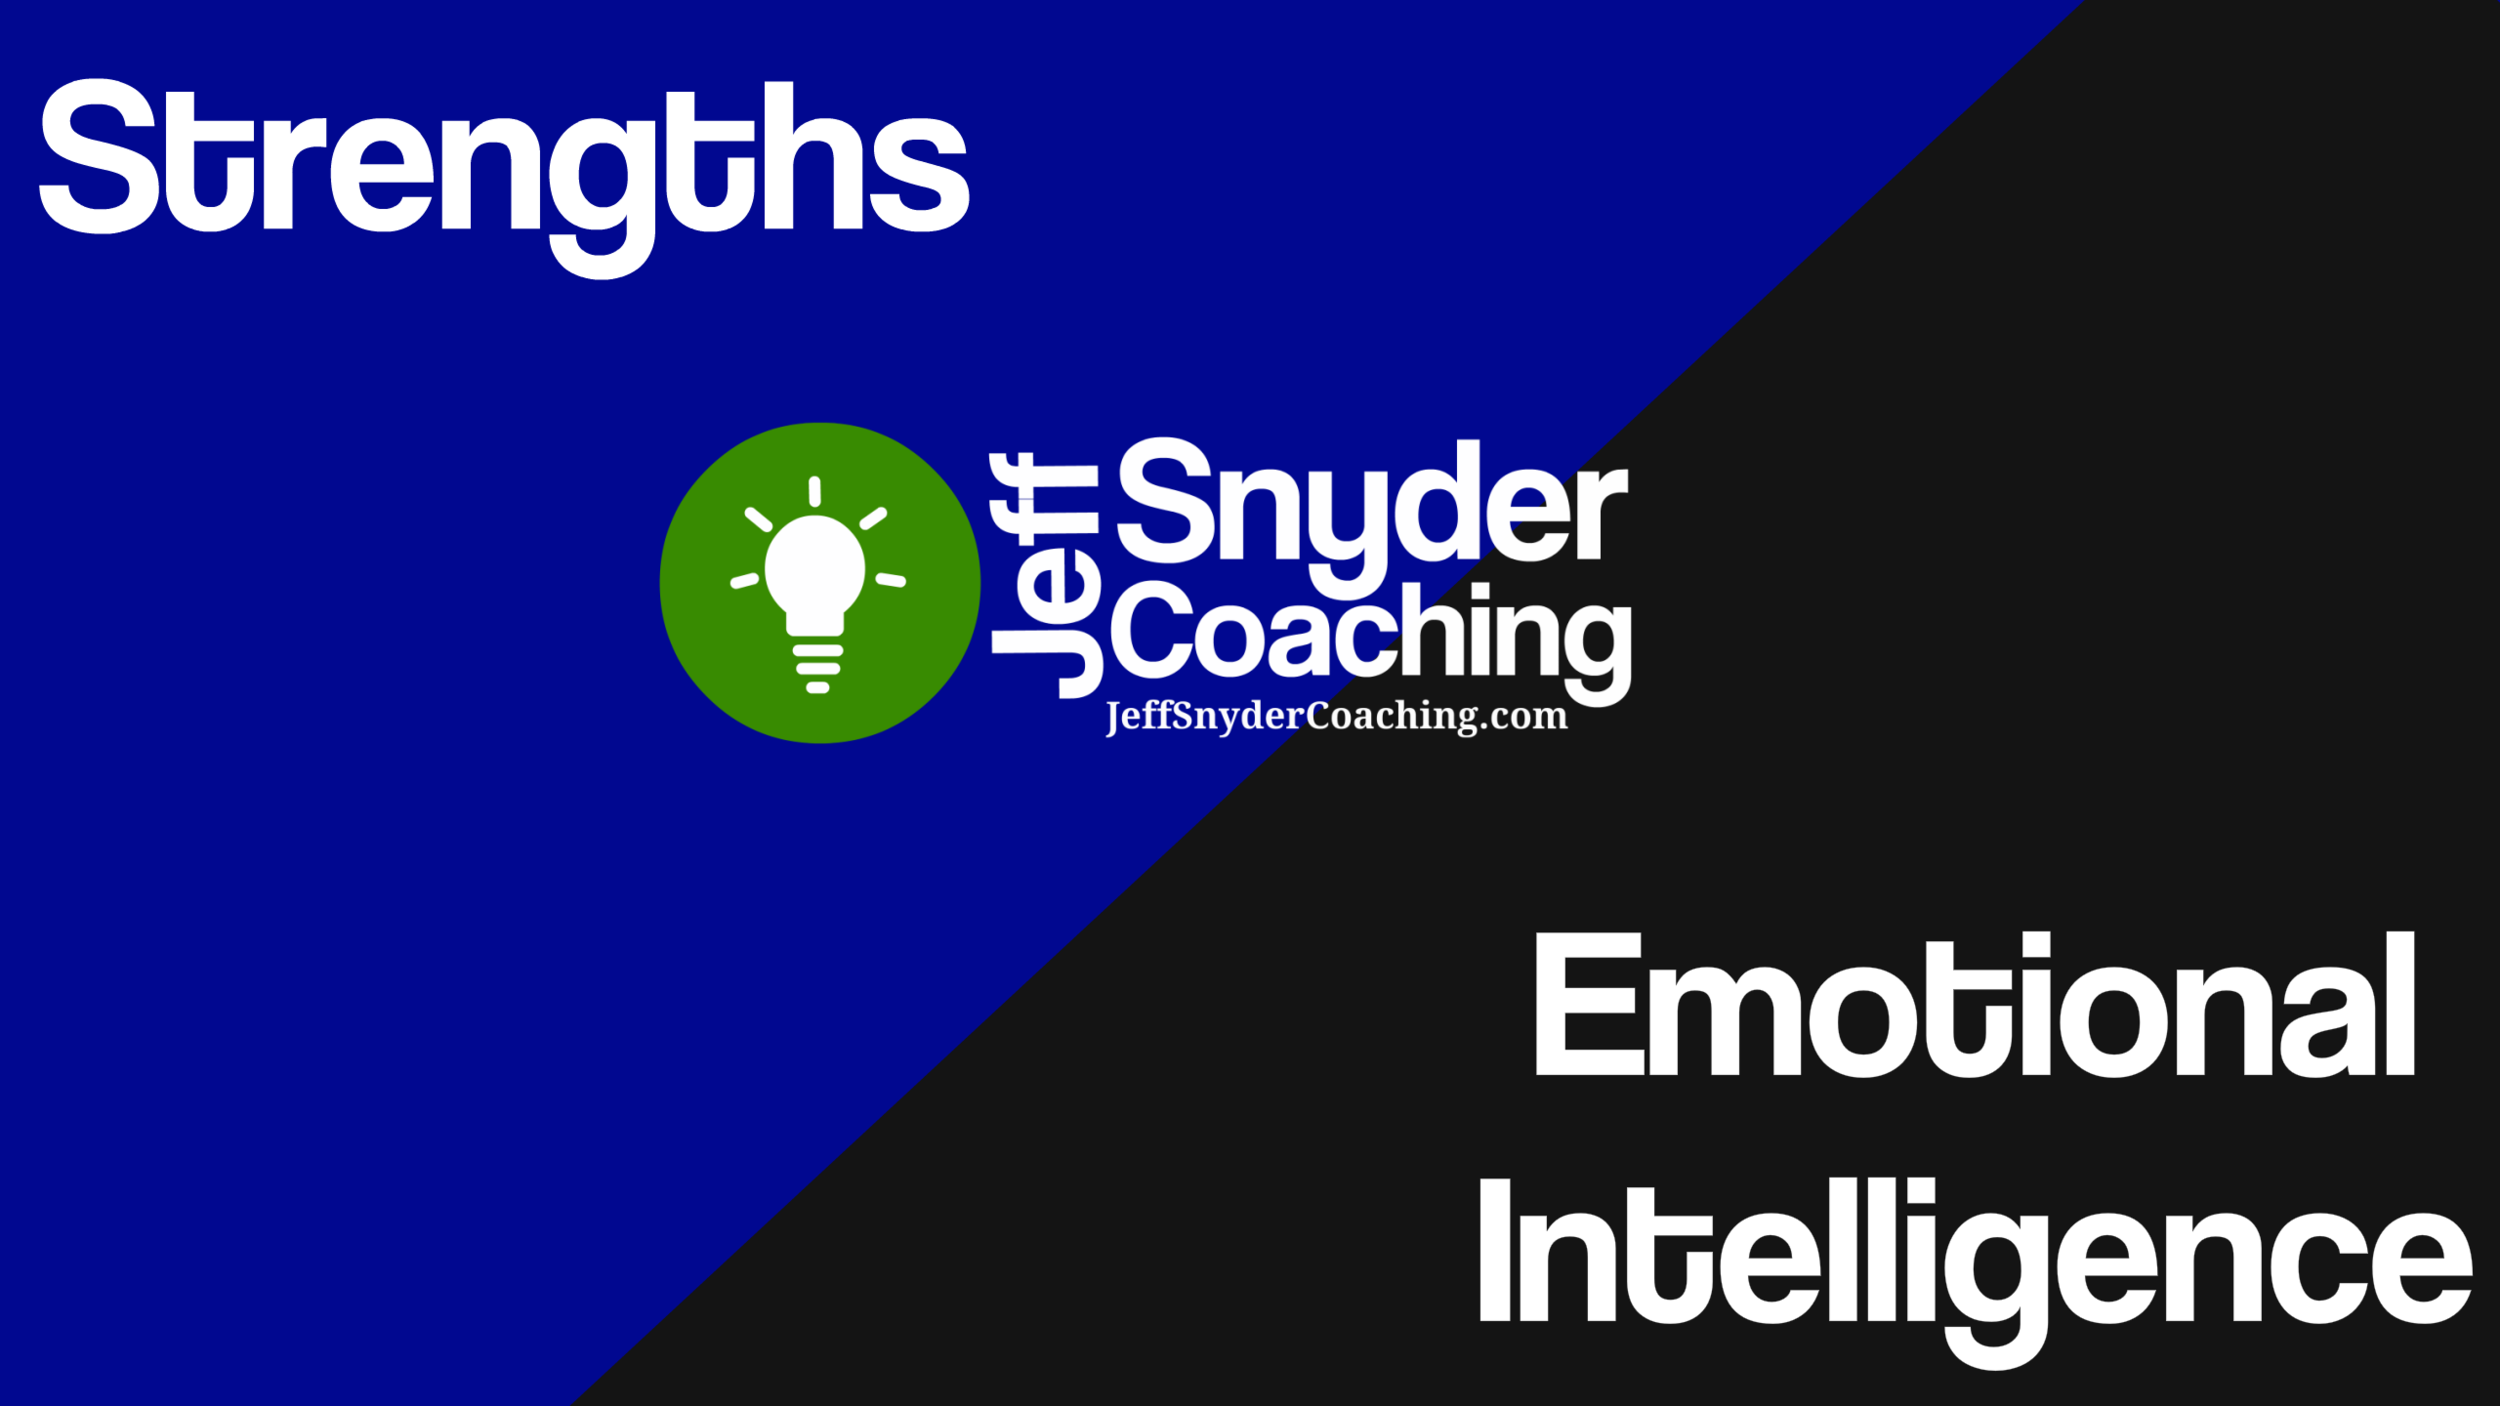 Strengths Coach, Emotional Intelligence Coach